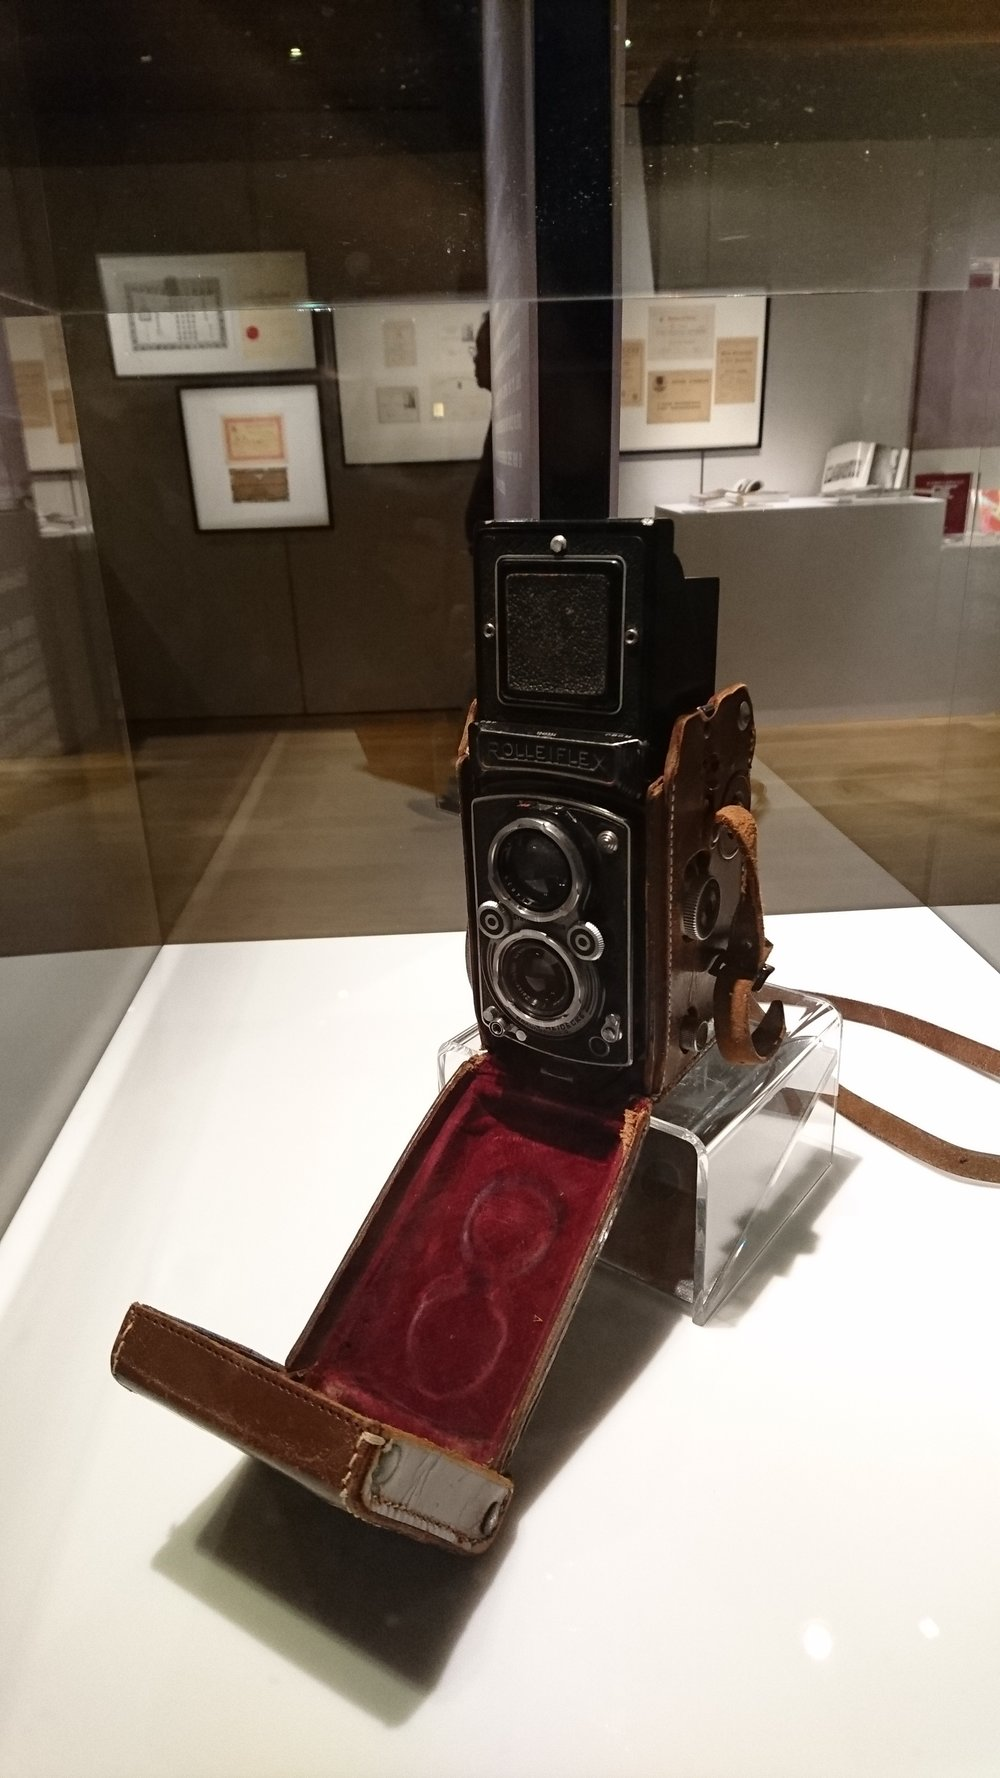 Rolleiflex camera used by Mr. Fan Ho for his award winning photographs